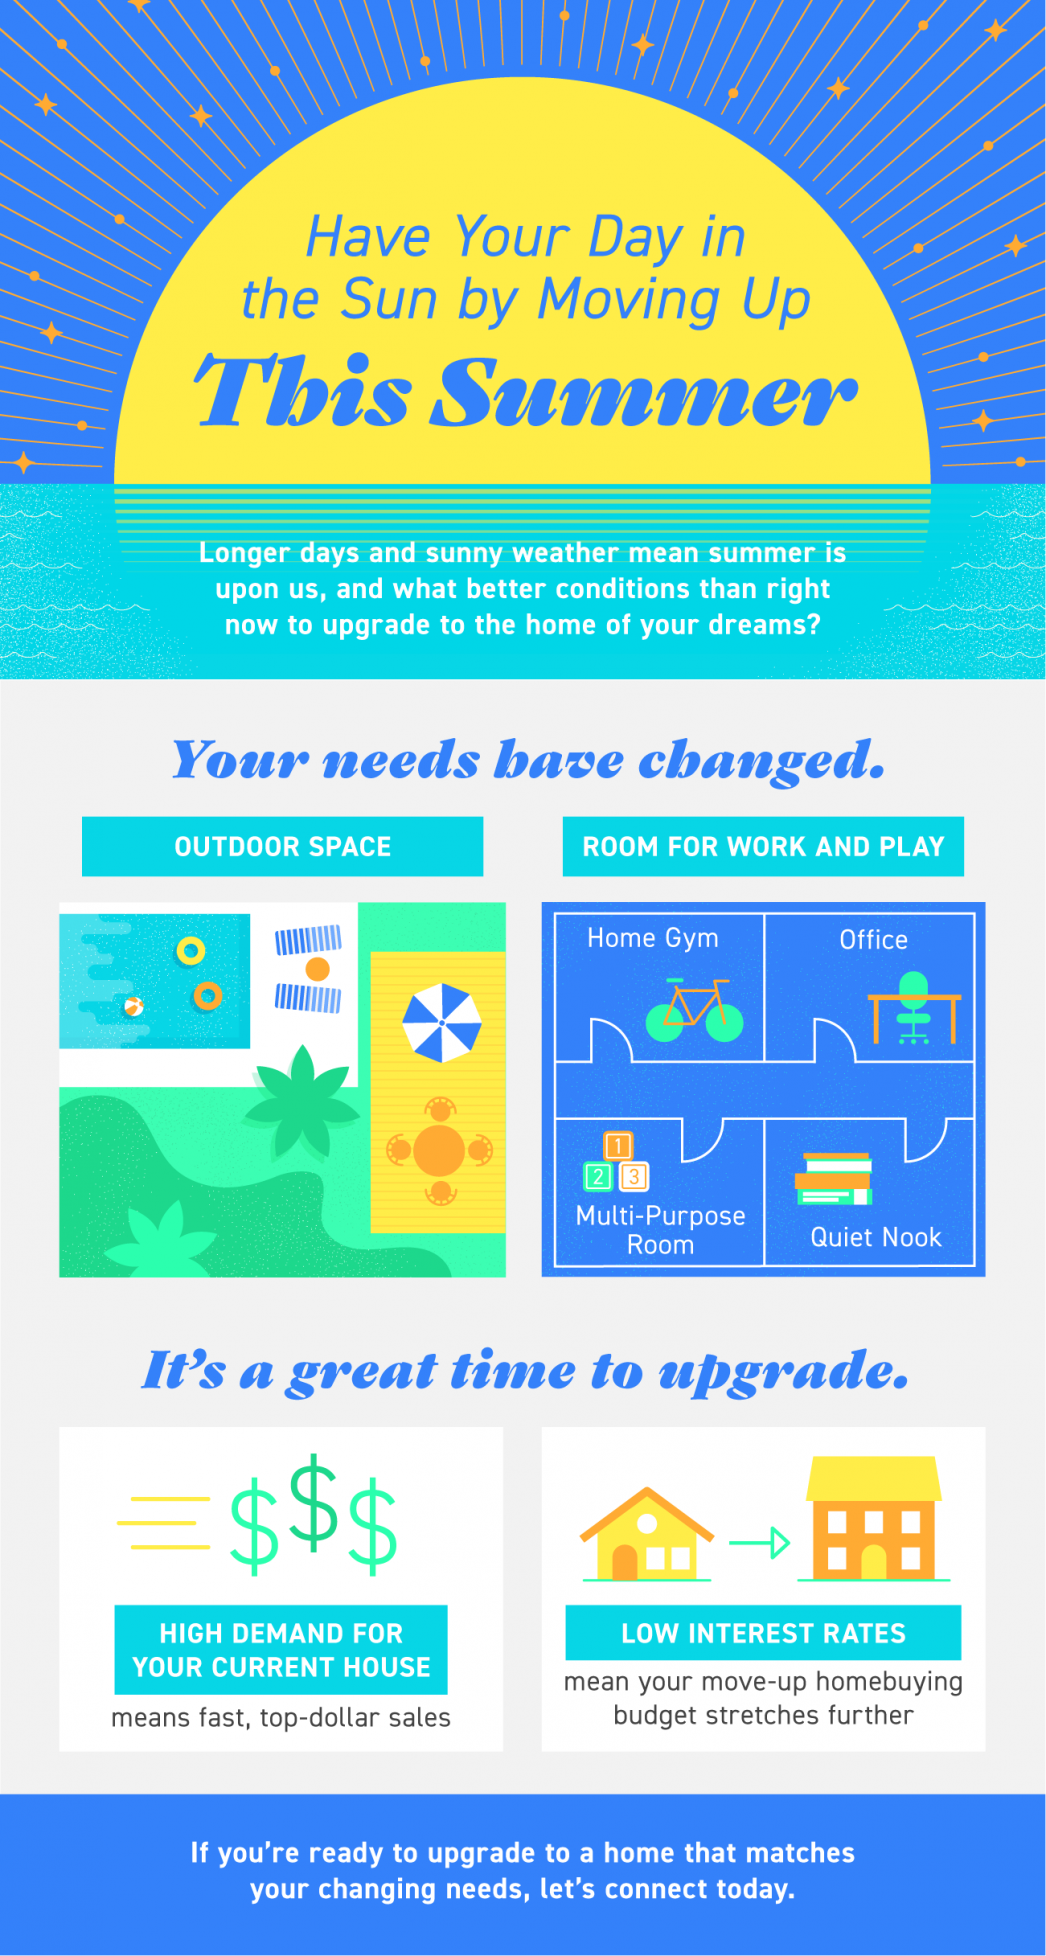 Have Your Day in the Sun by Moving Up This Summer [INFOGRAPHIC] | MyKCM